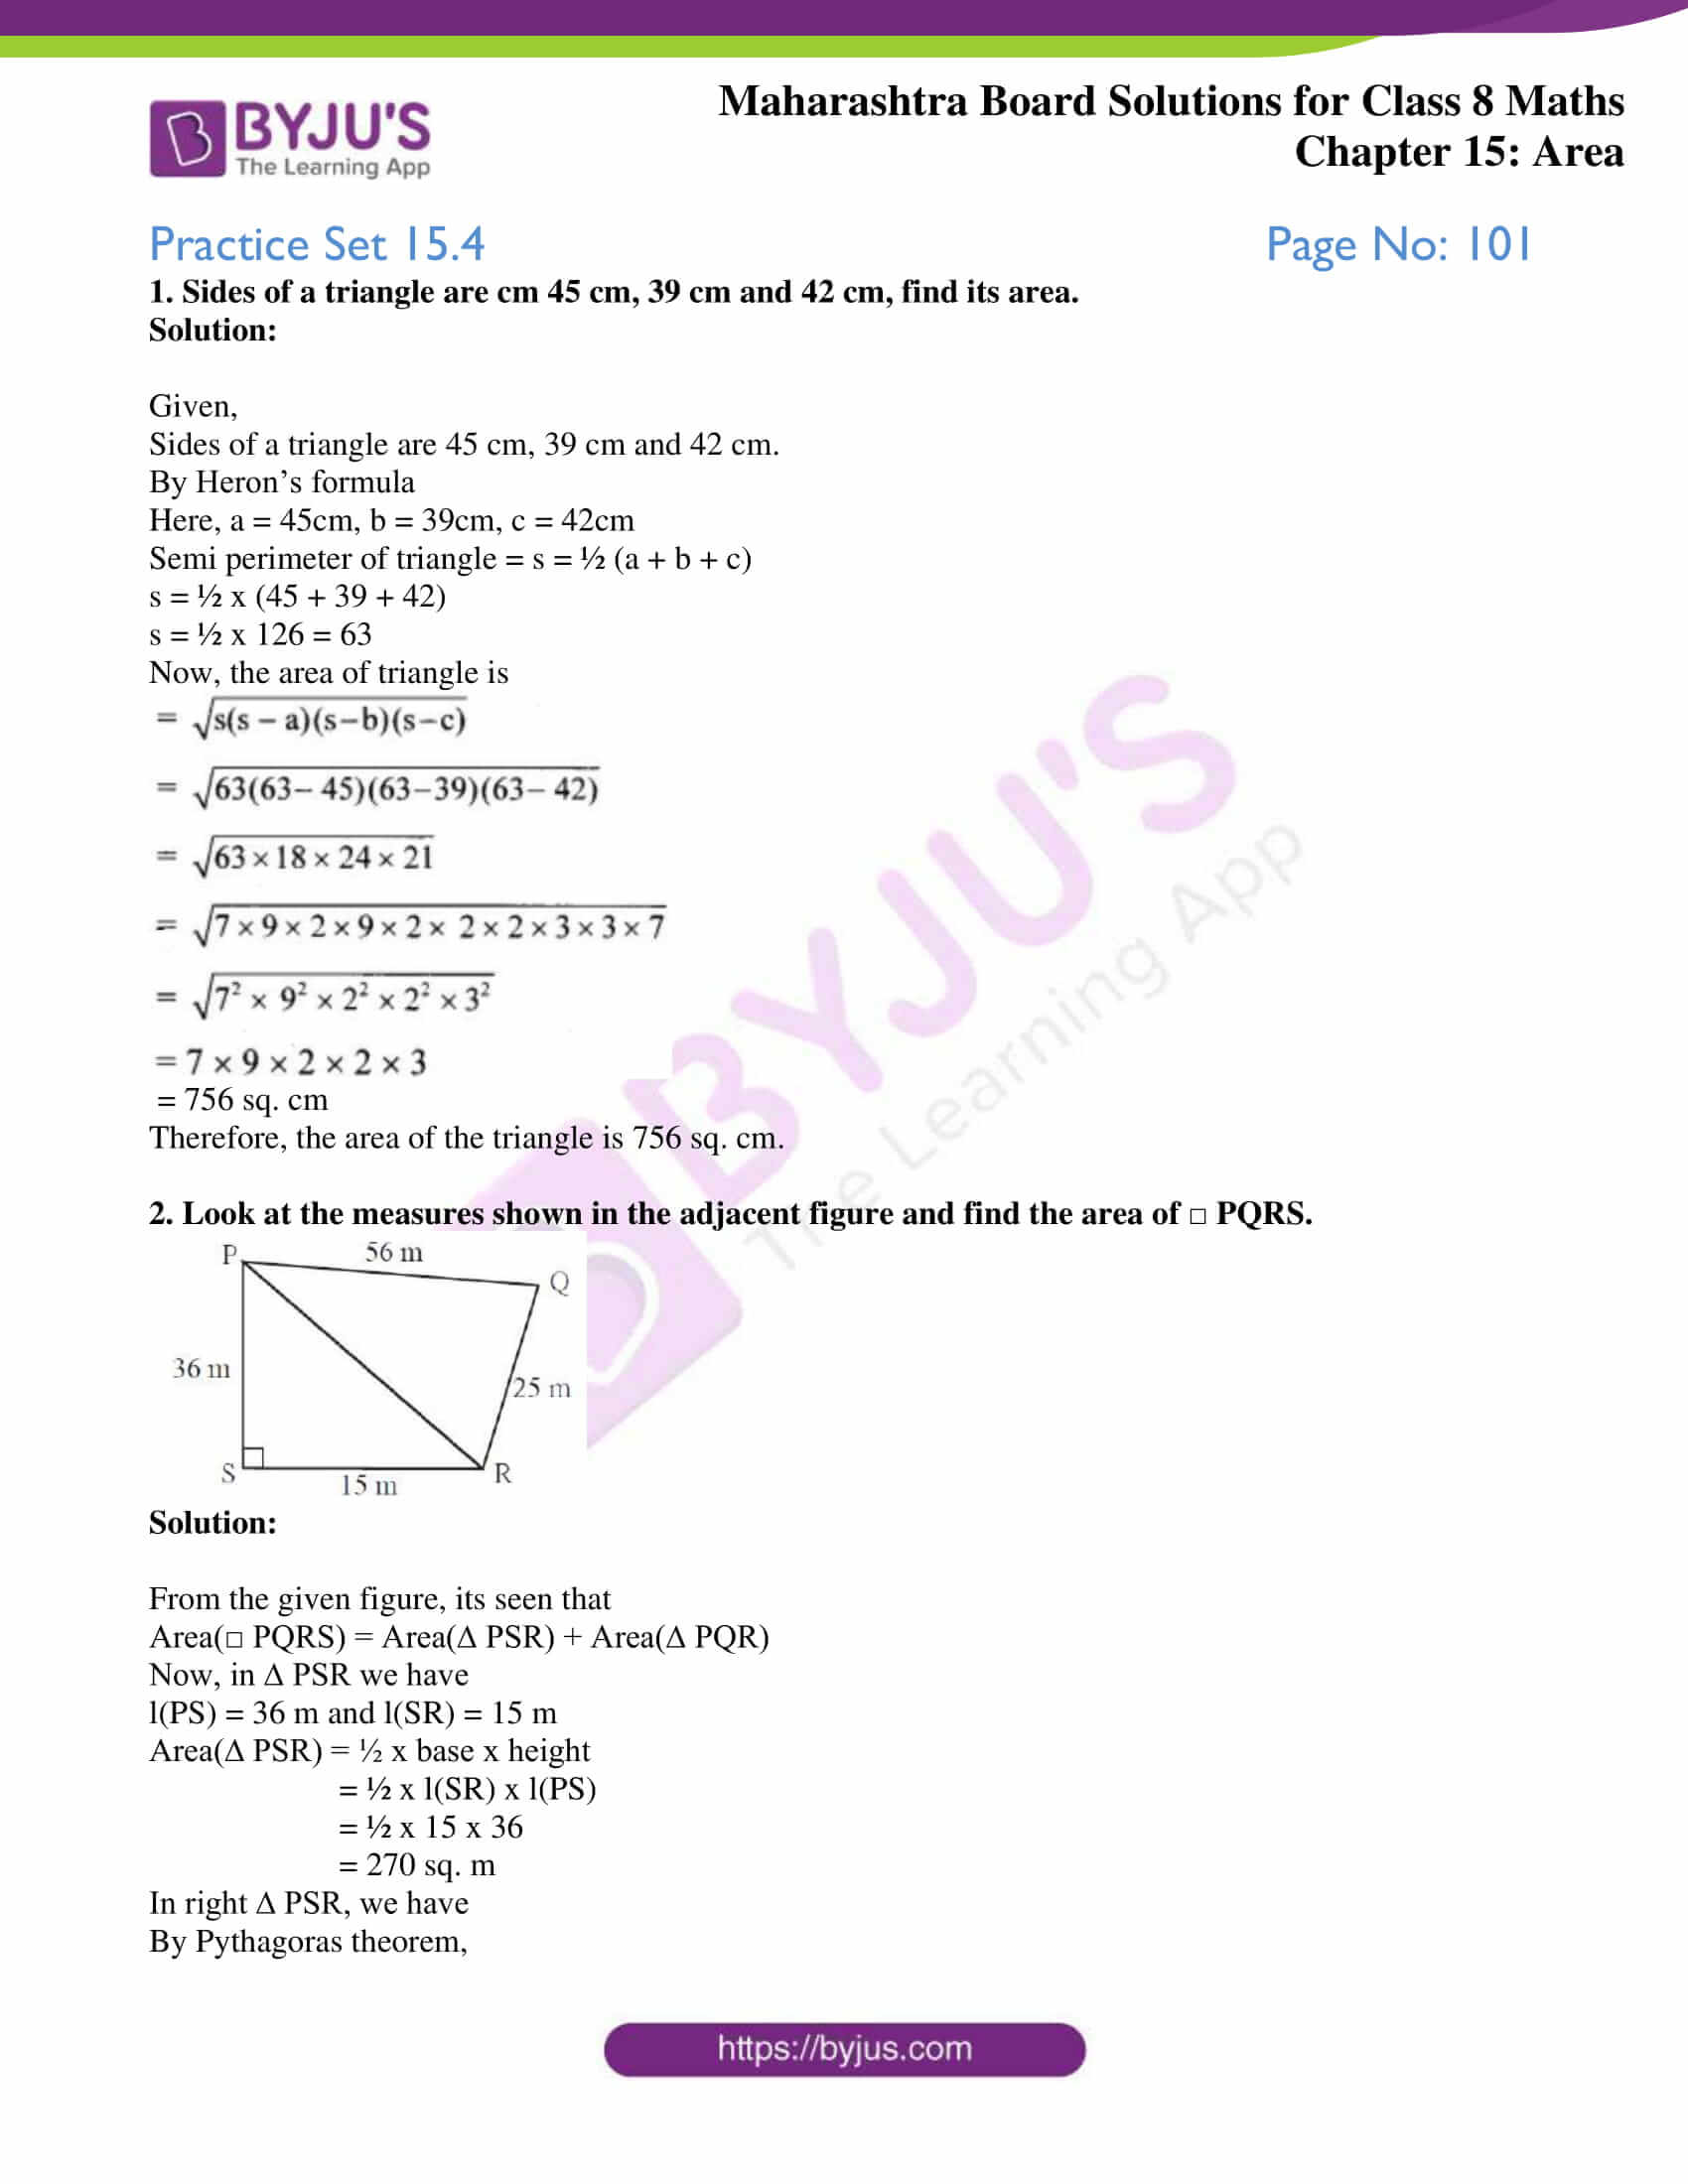 msbshse sol for class 8 maths chapter 15 06